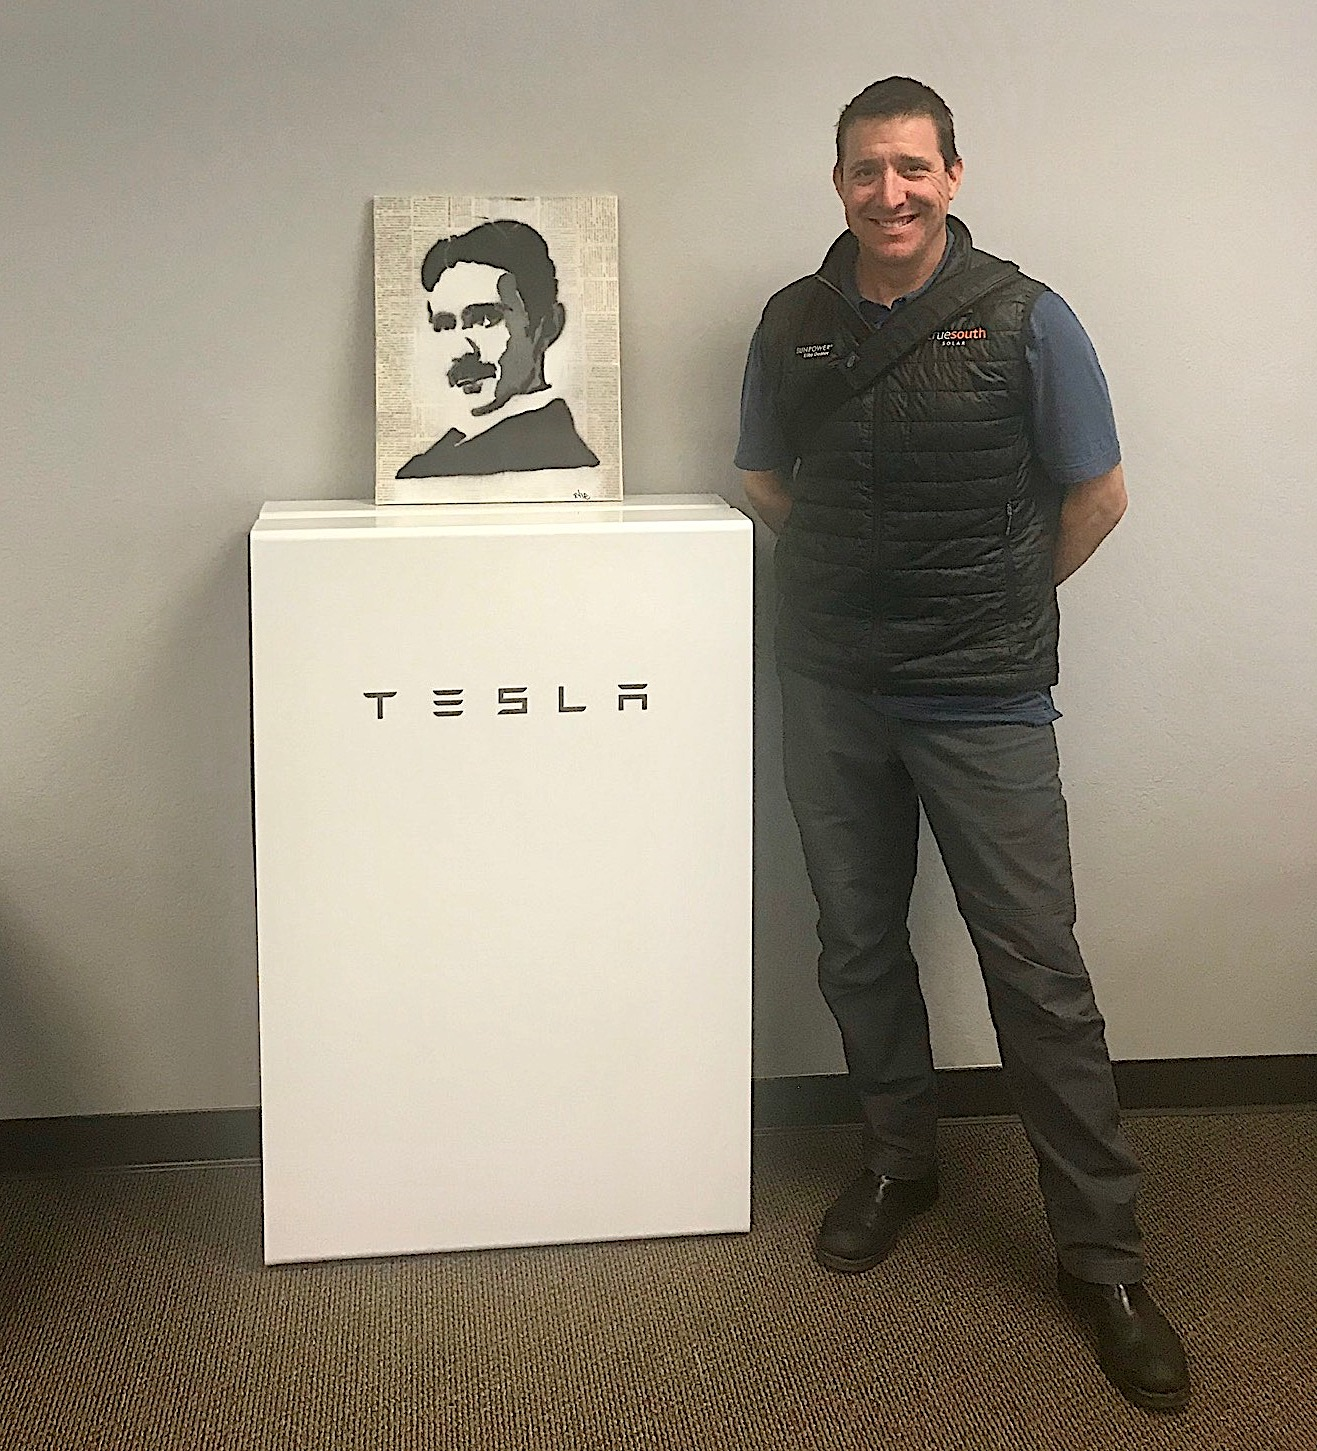 - True South Solar is now a Tesla Powerwall Certified Installer, which means we now offer a customized solar-plus-battery solution that enables you to access the abundant power of the sun and reduces your reliance on fossil fuels.